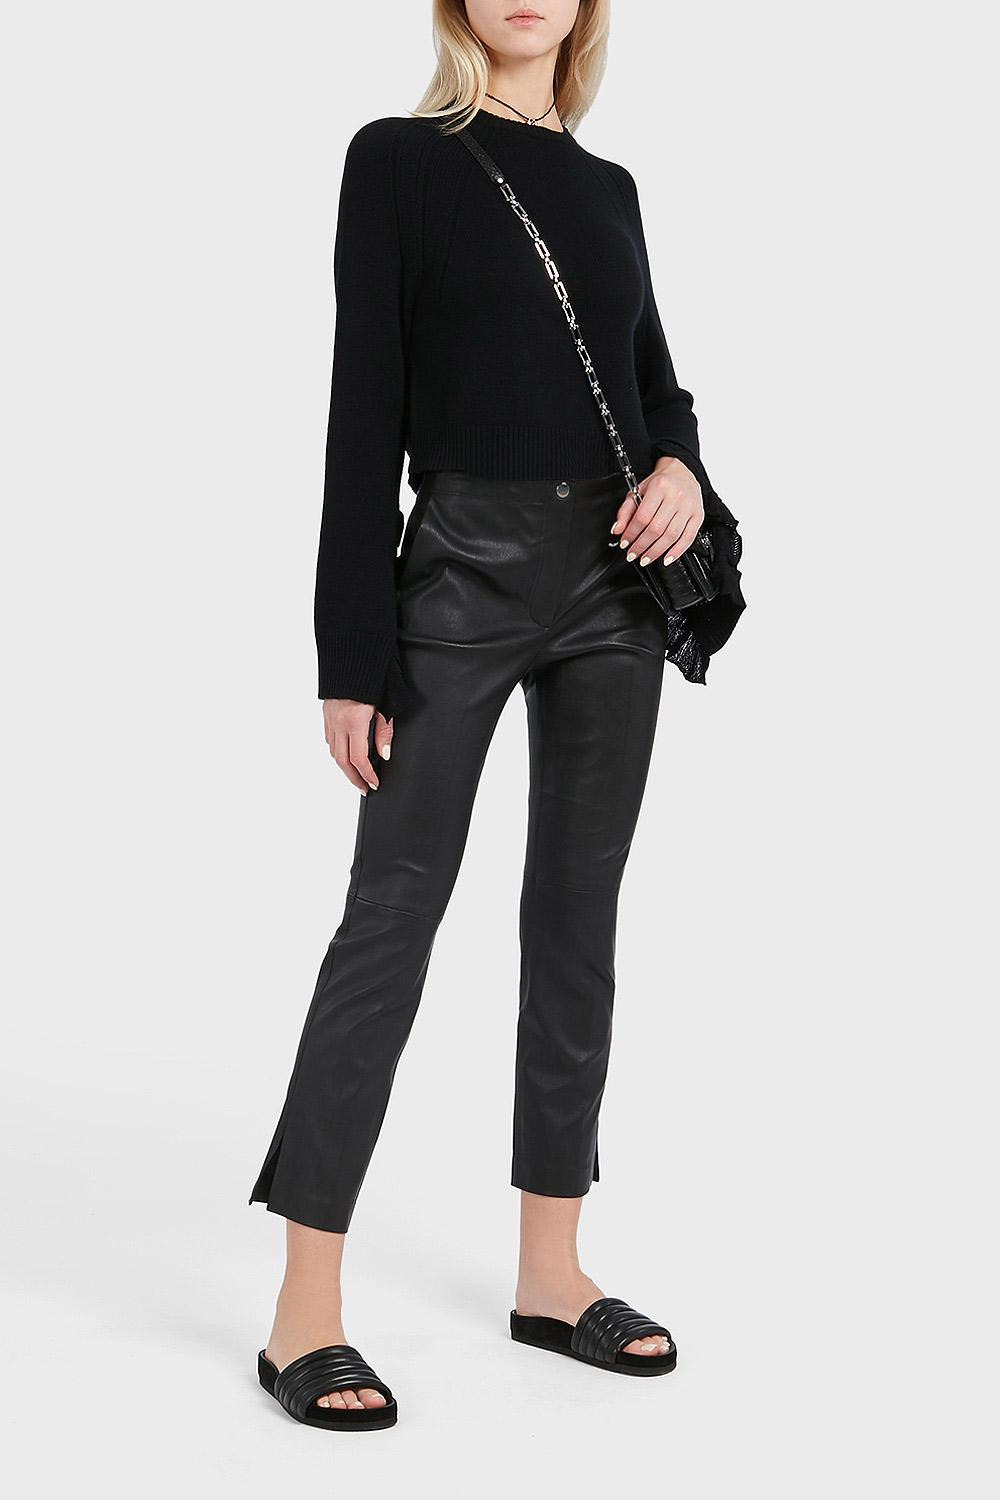 a83ff54c648e53 Gallery. Previously sold at: Boutique1 · Women's Black Leather Pants ...